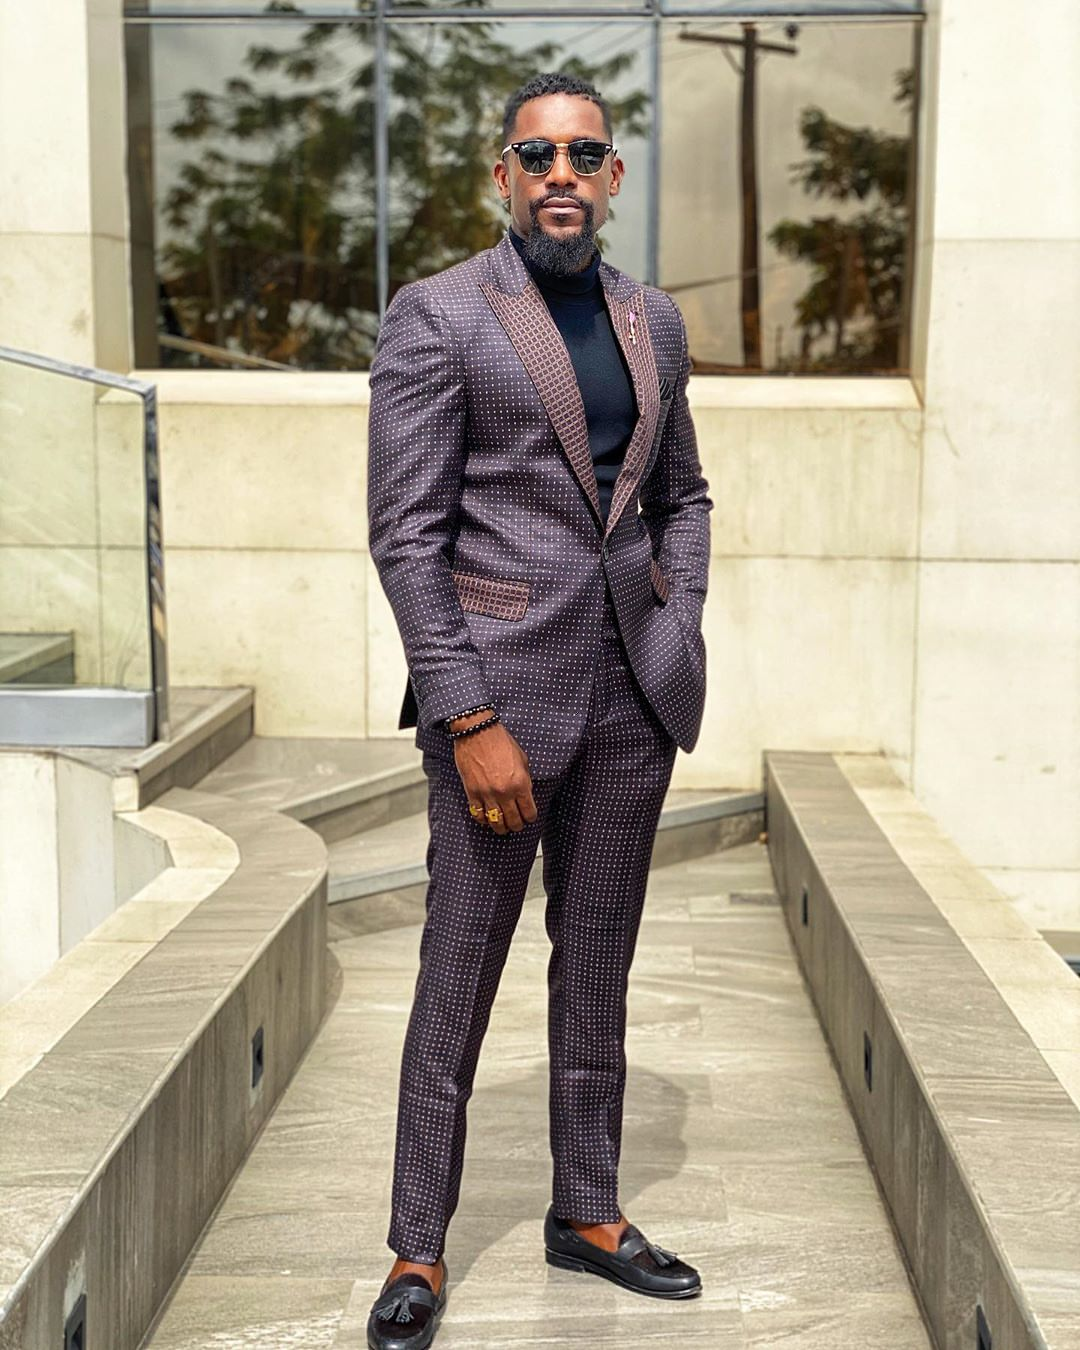 africa-male-celebrities-best-dressed-men-africa-fashion-style-rave-mawuli-gavor